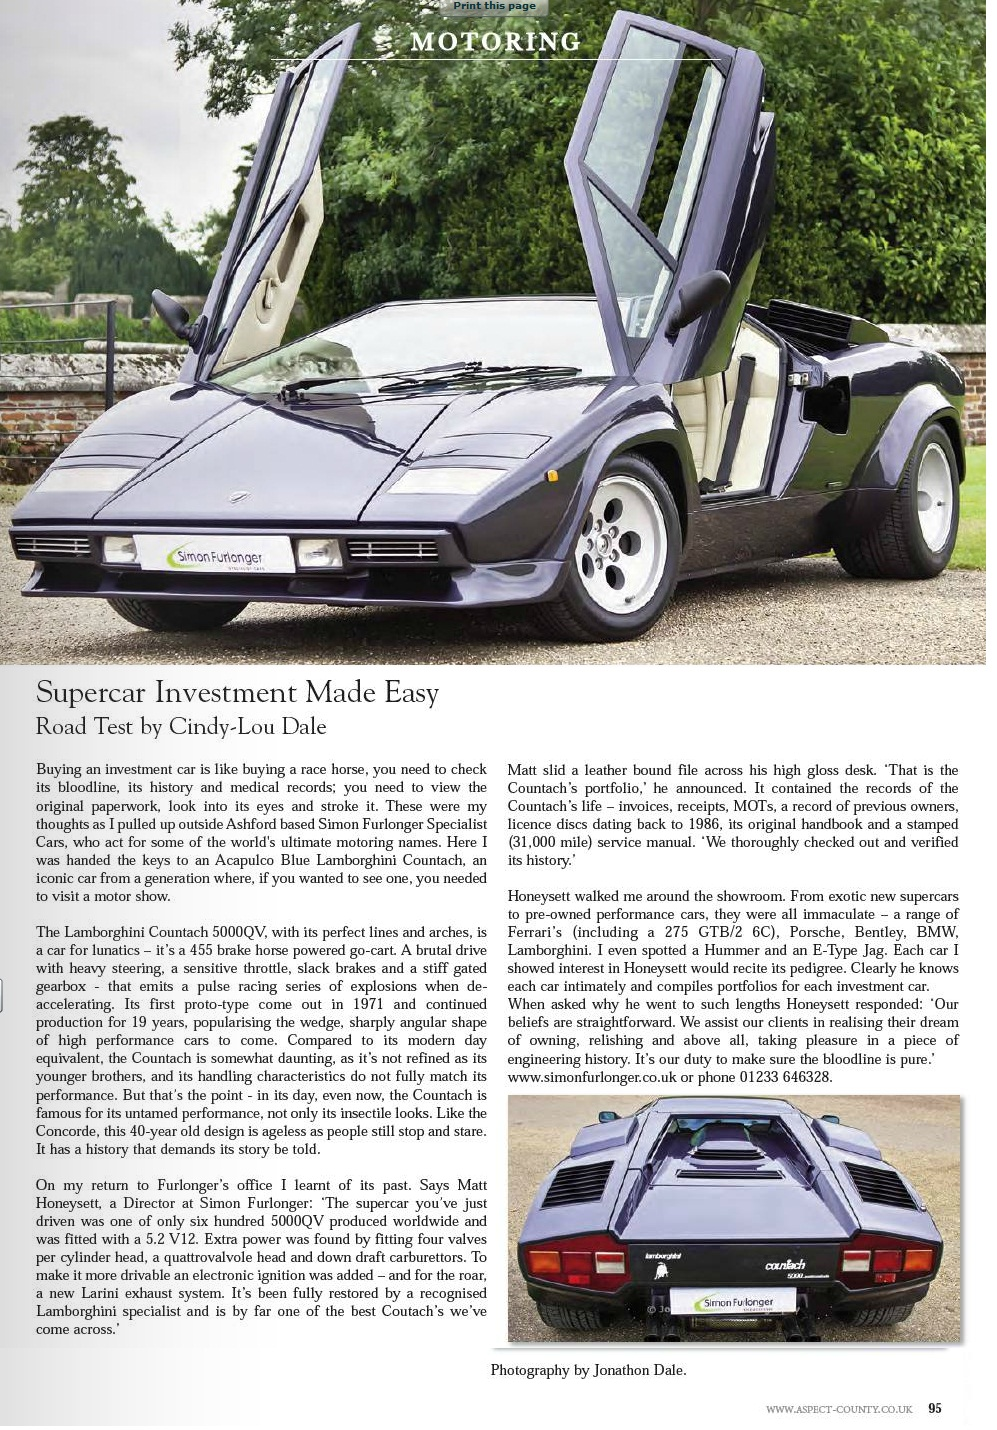 Aspect County, UK - Lambo Countach